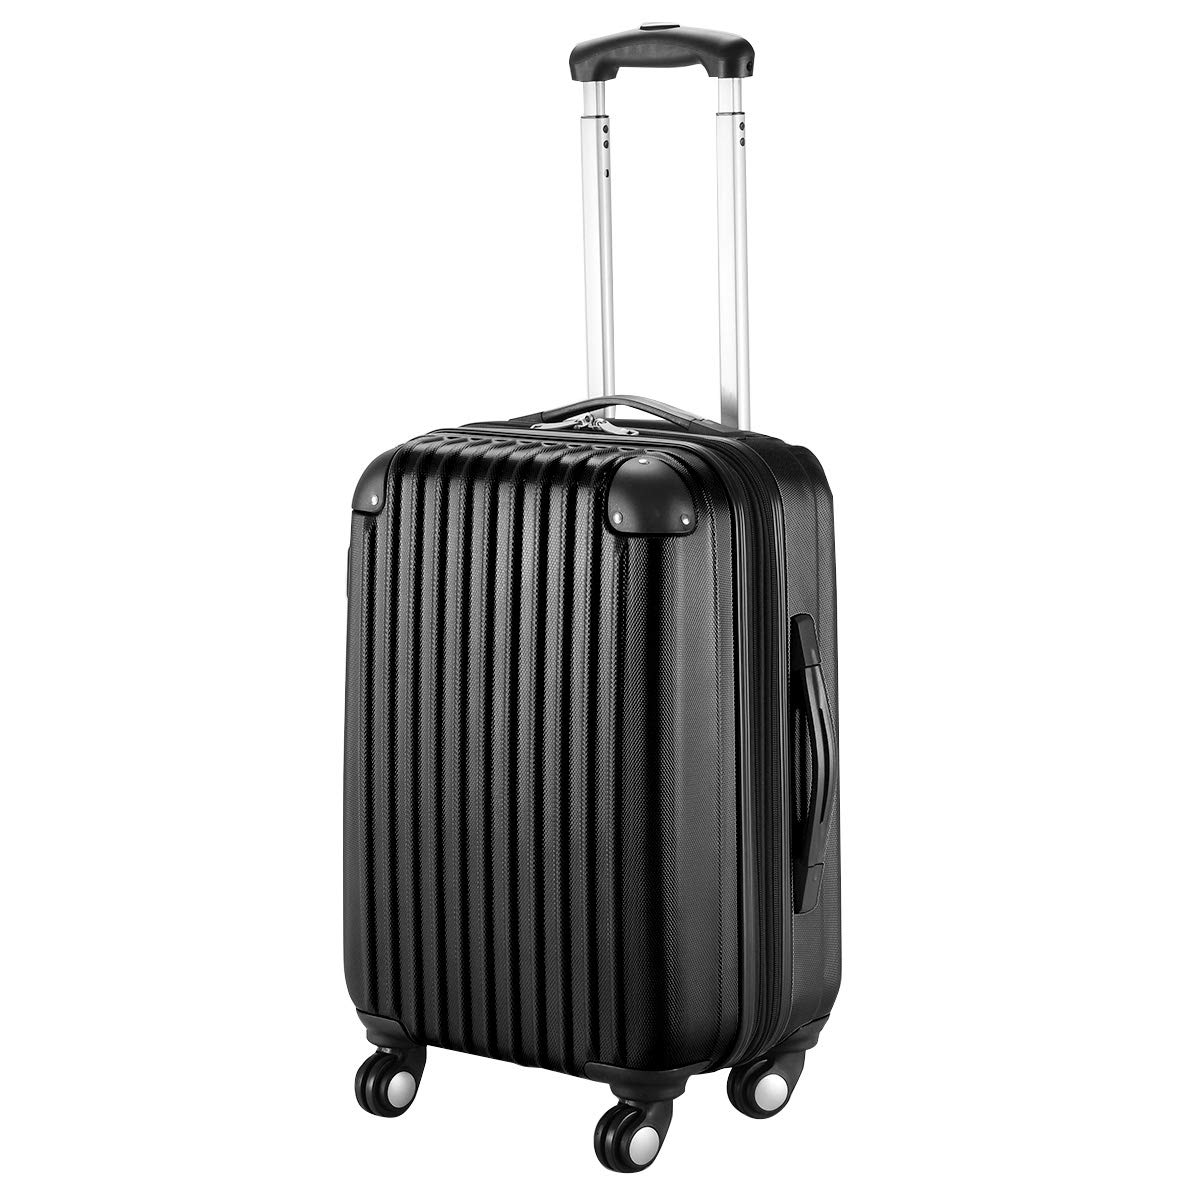 Goplus 20'' ABS Carry On Luggage Expandable Hardside Travel Bag Trolley Rolling Suitcase GLOBALWAY (Black) by Goplus (Image #1)